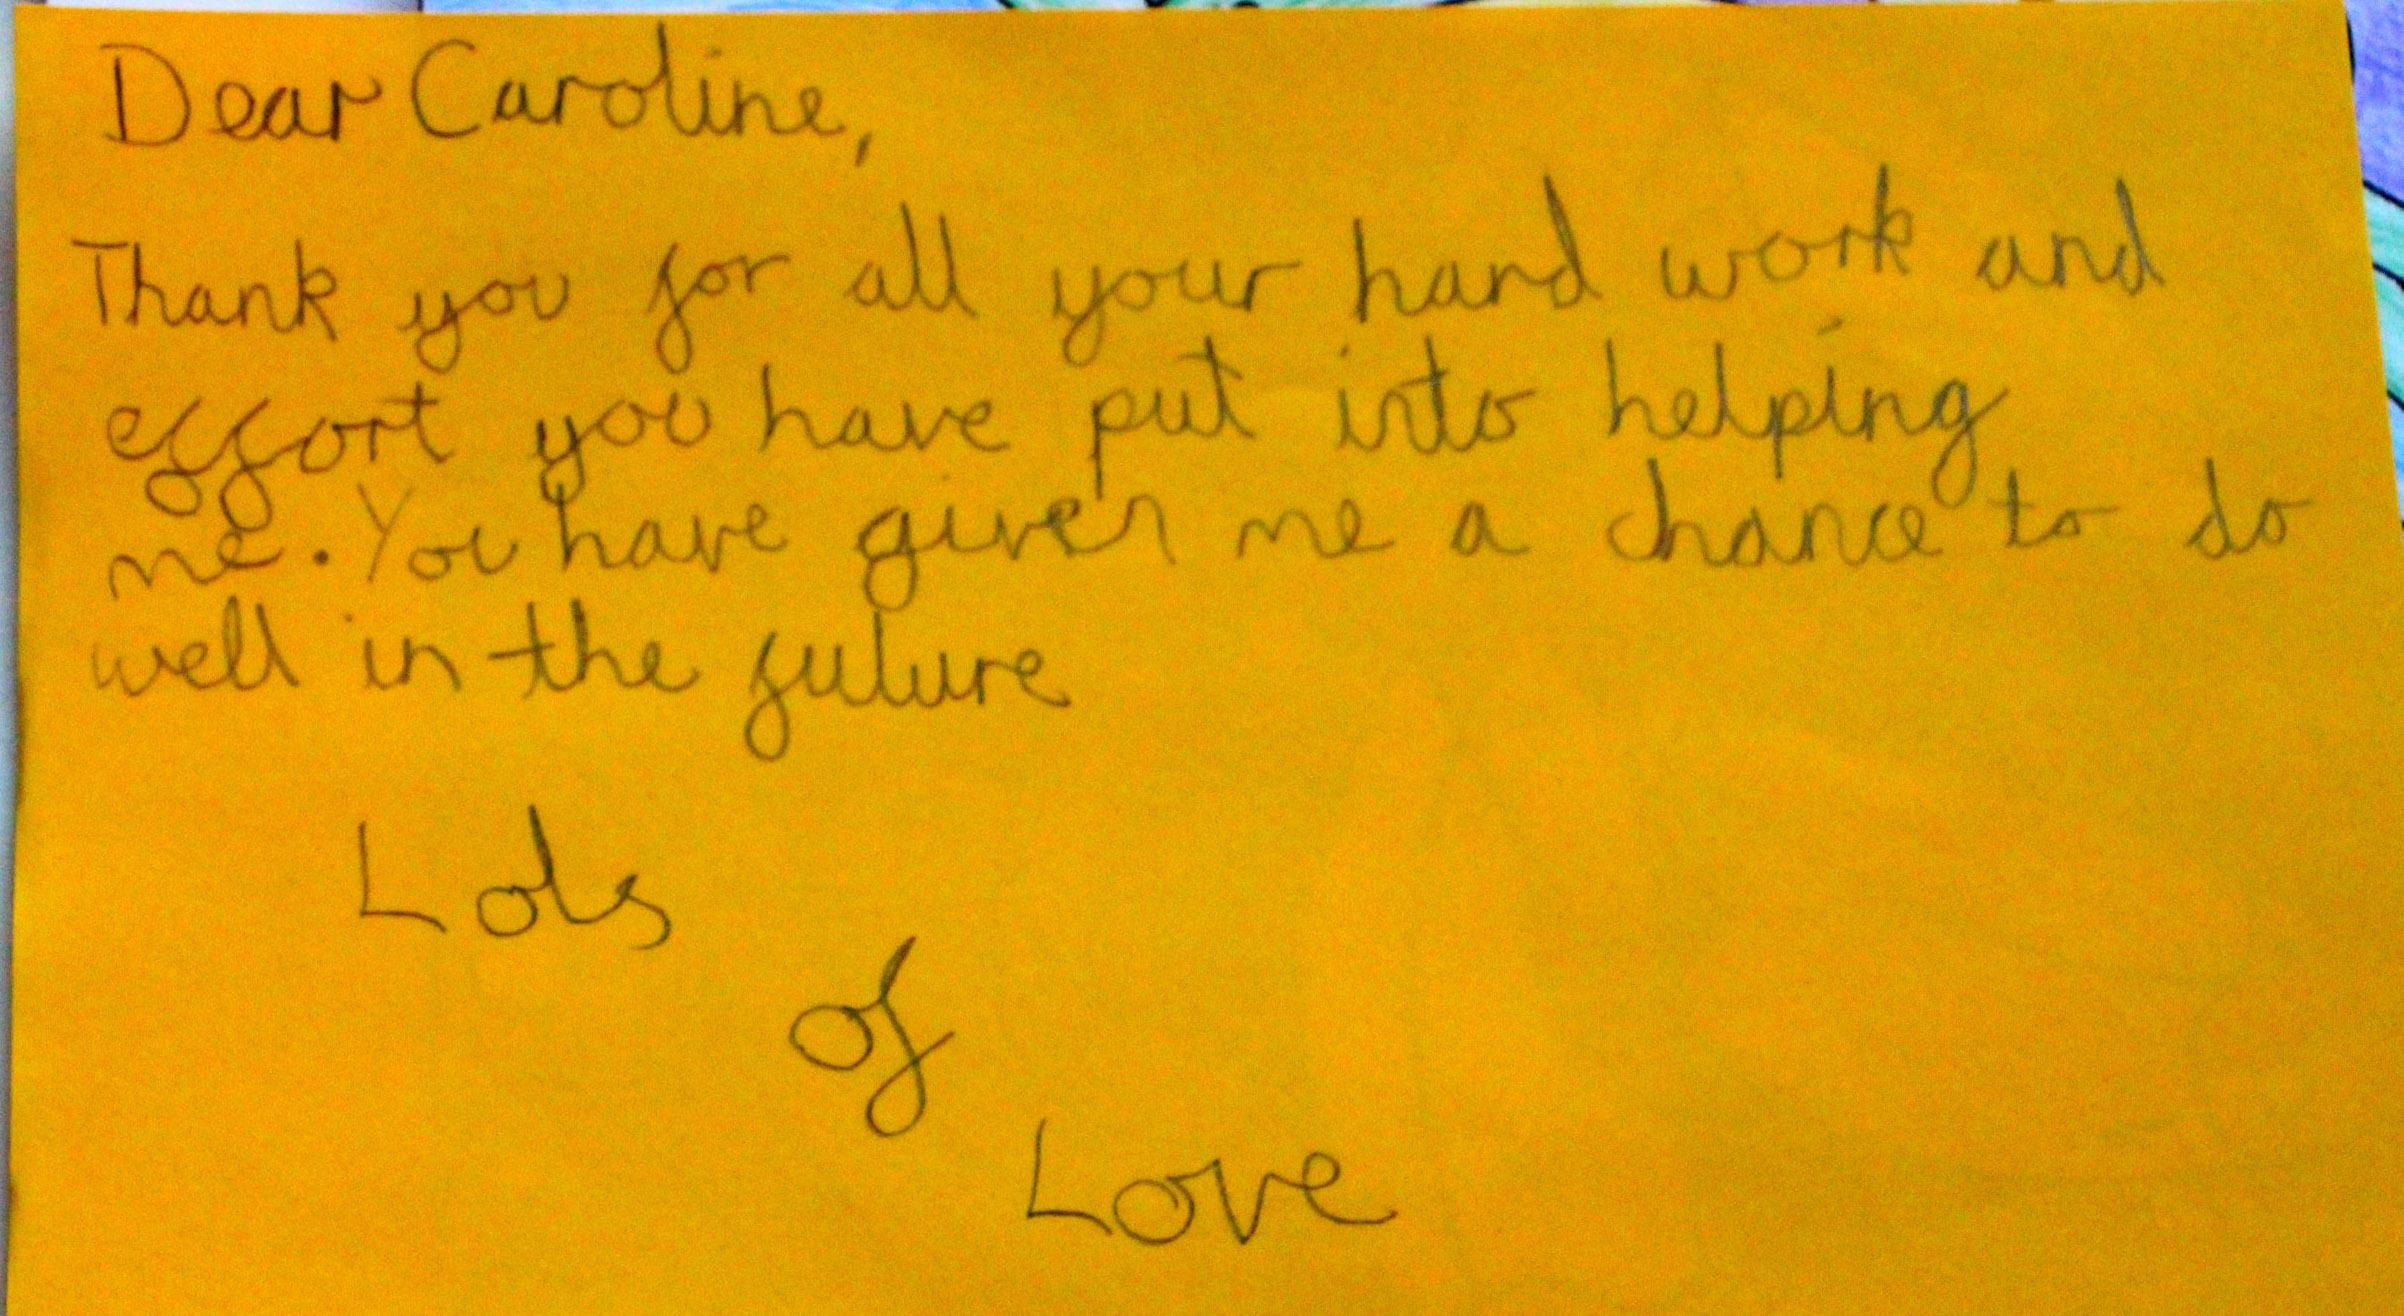 Note from a grateful student